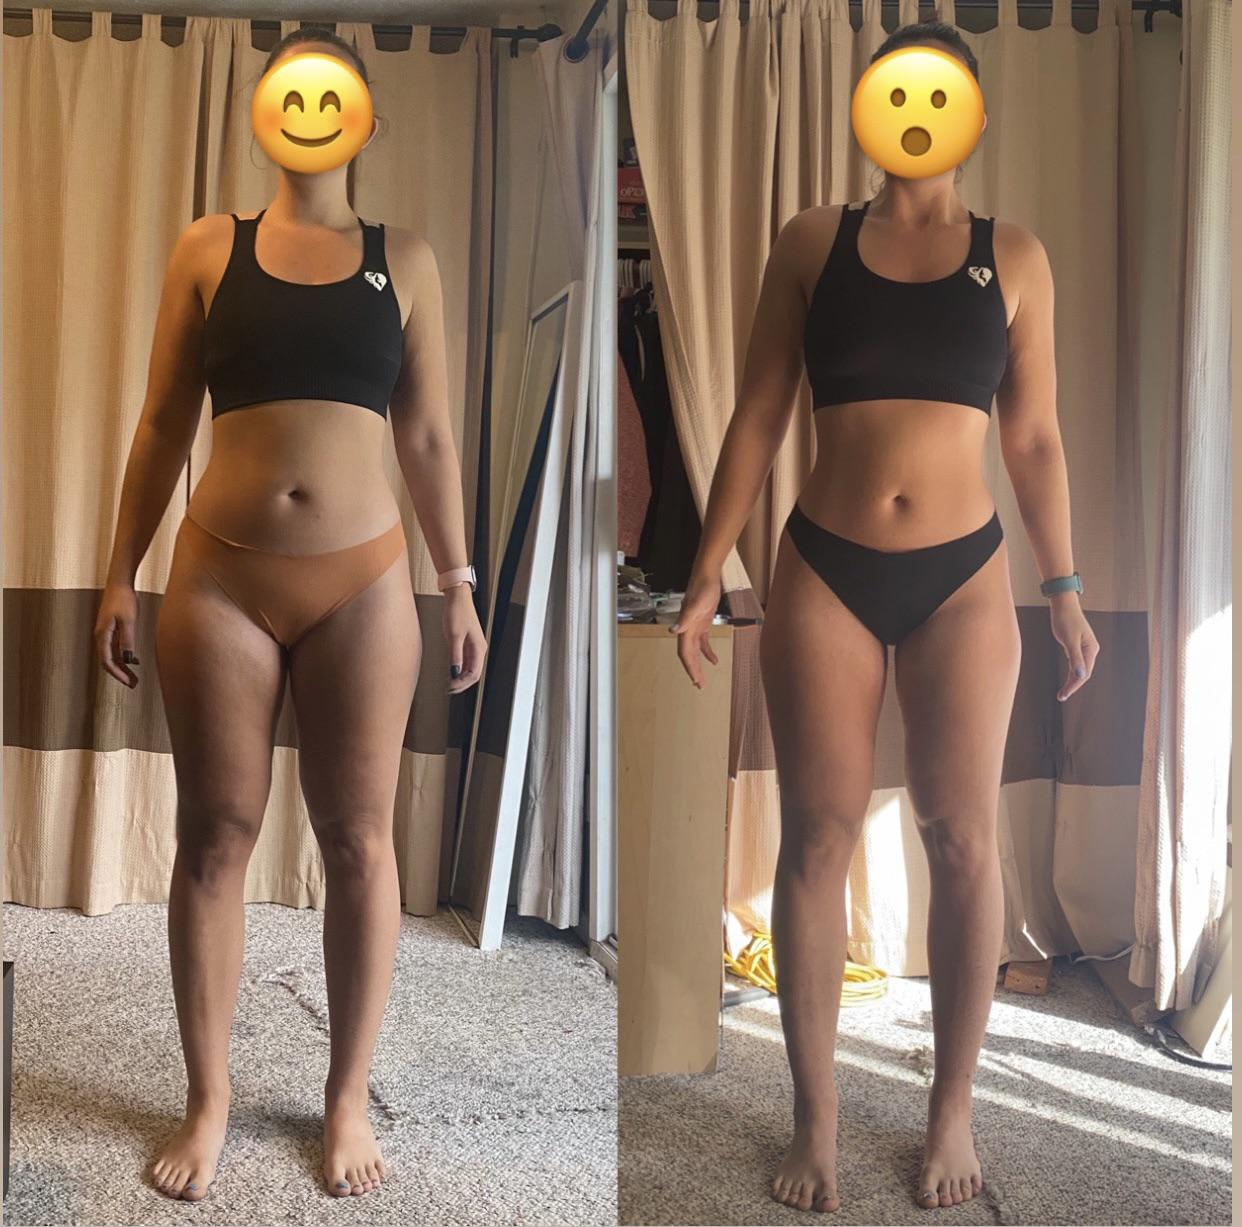 2 lbs Weight Loss Before and After 5 feet 4 Female 150 lbs to 148 lbs